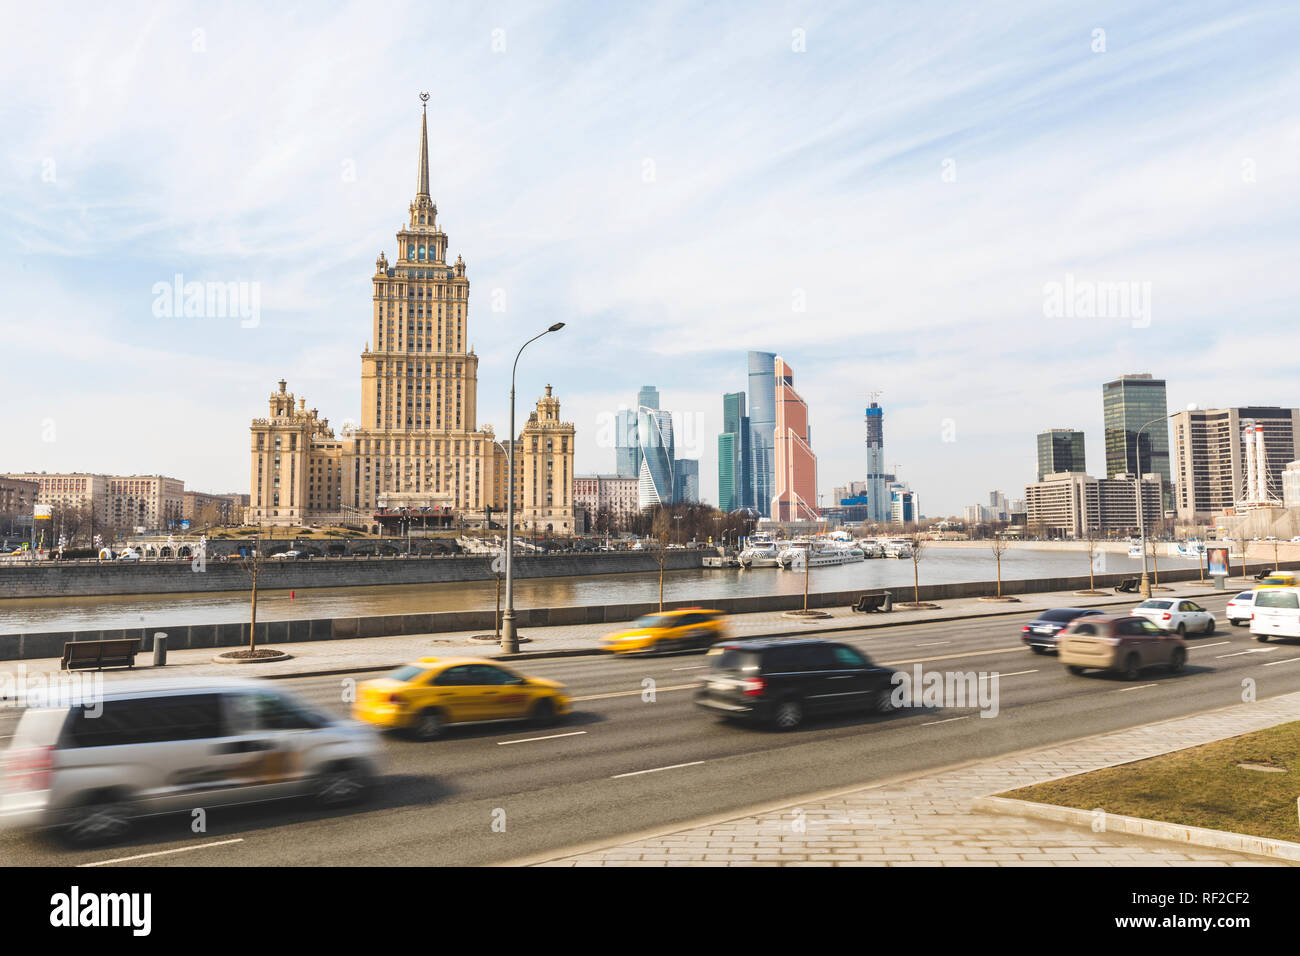 Russia, Moscow, View of the Hotel Ukraina and skyscrapers of the modern city in background - Stock Image